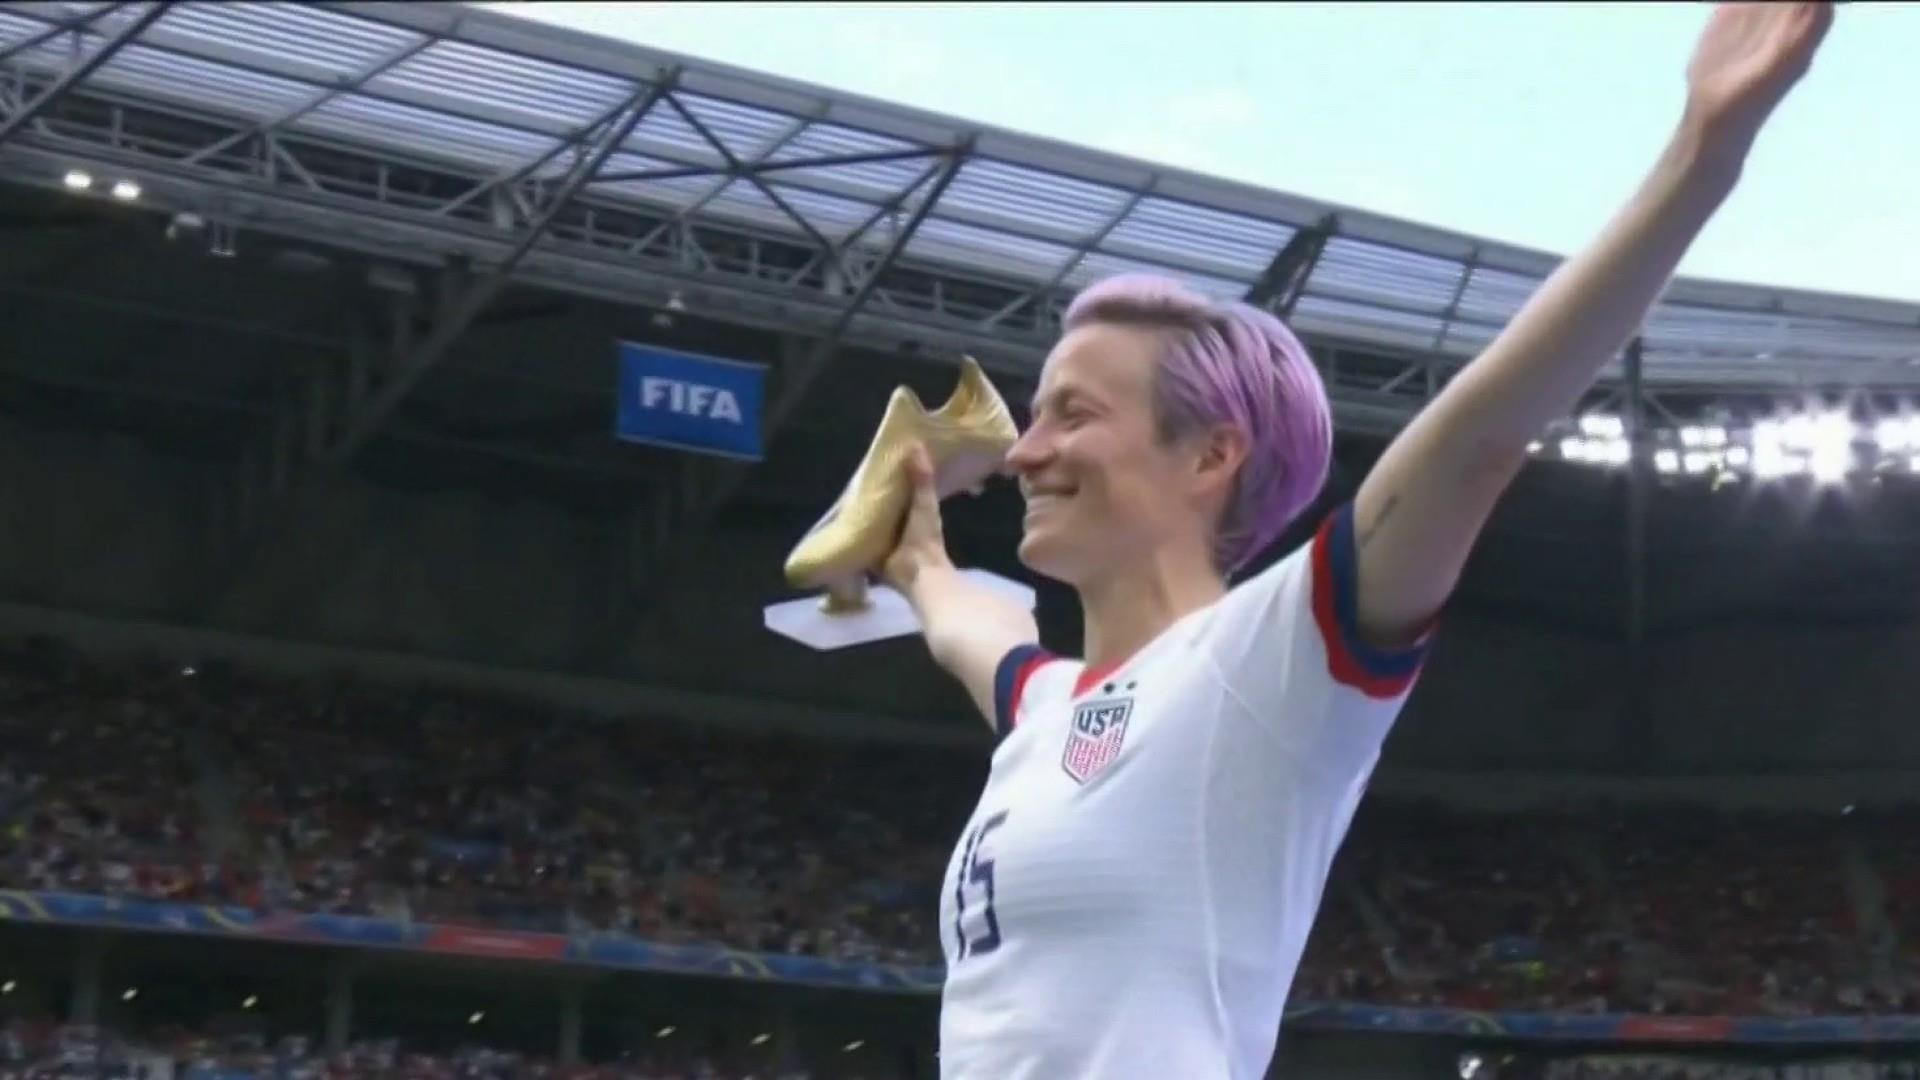 U.S. women's soccer team wins 2019 World Cup over the Netherlands in 2-0 final